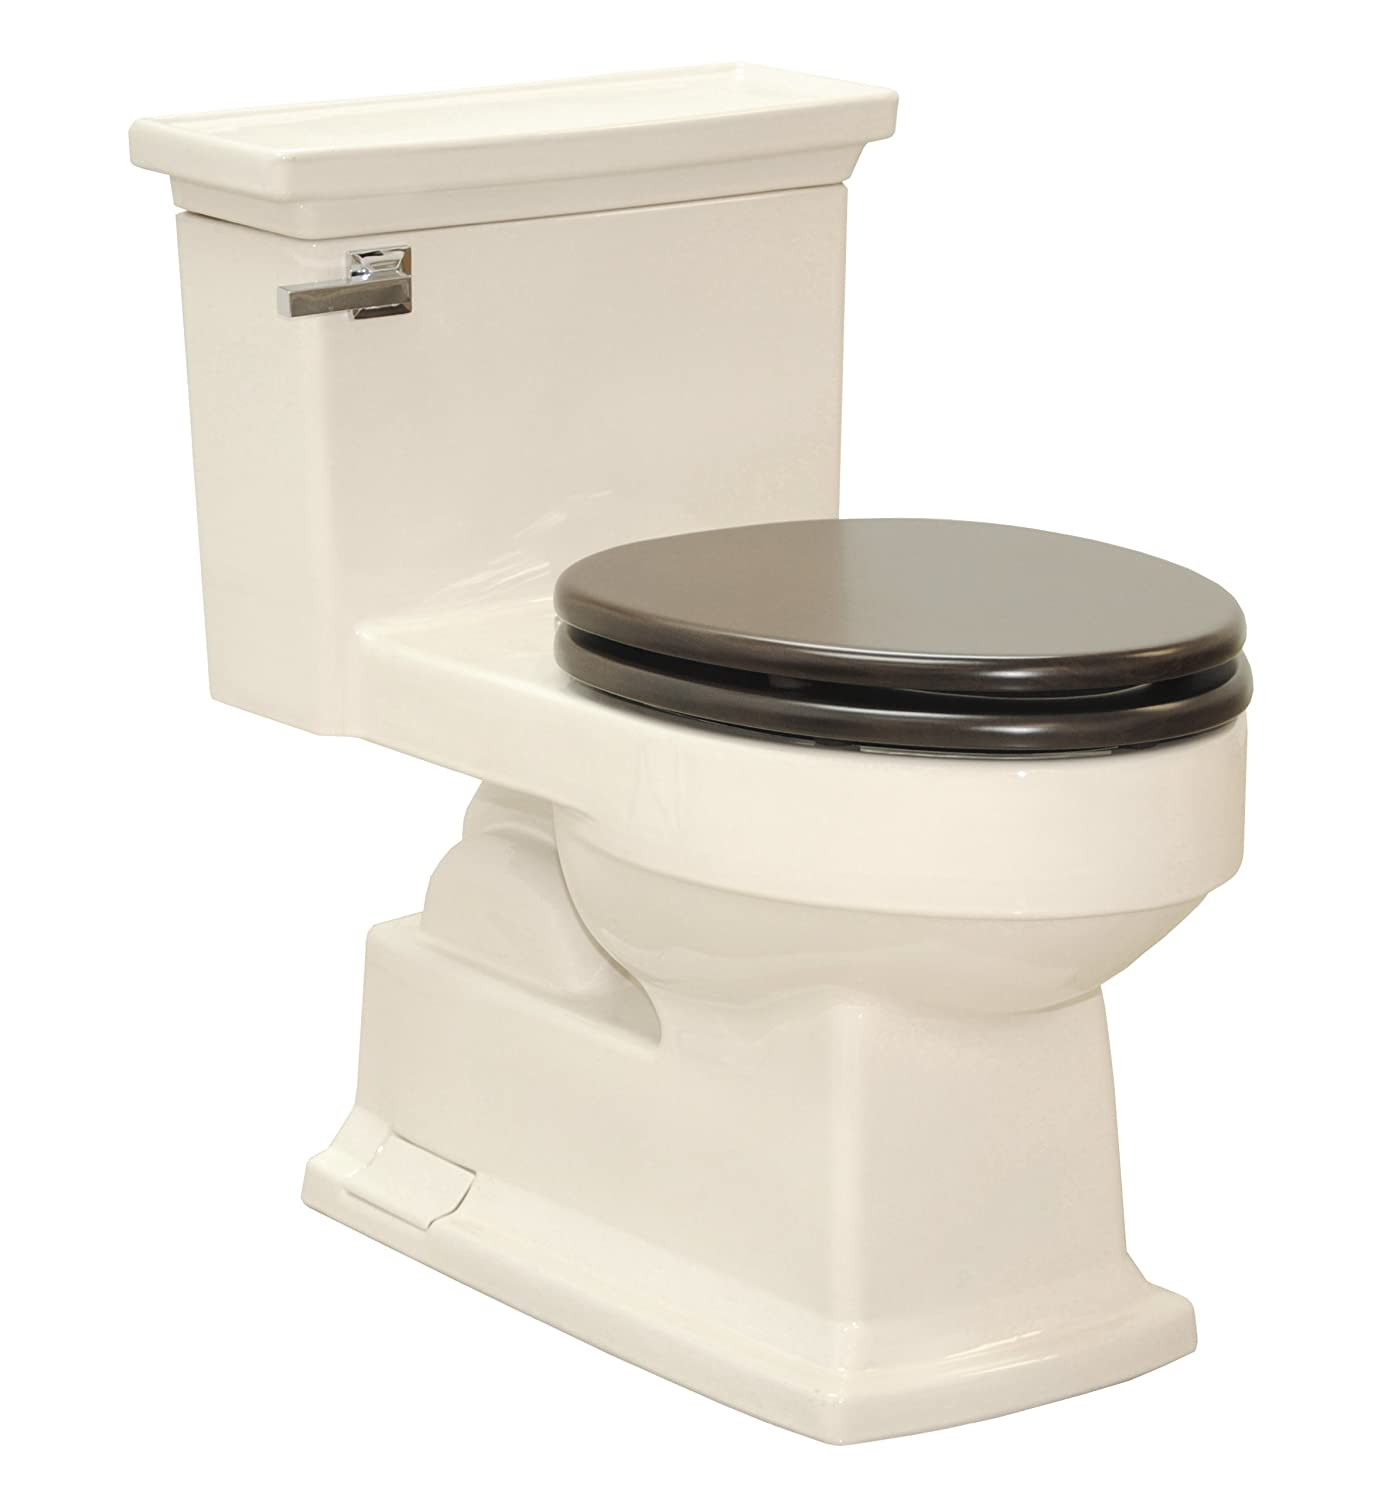 Lloyd One-Piece Toilet 1.28 GPF Bone with SoftClose Maple seat ...